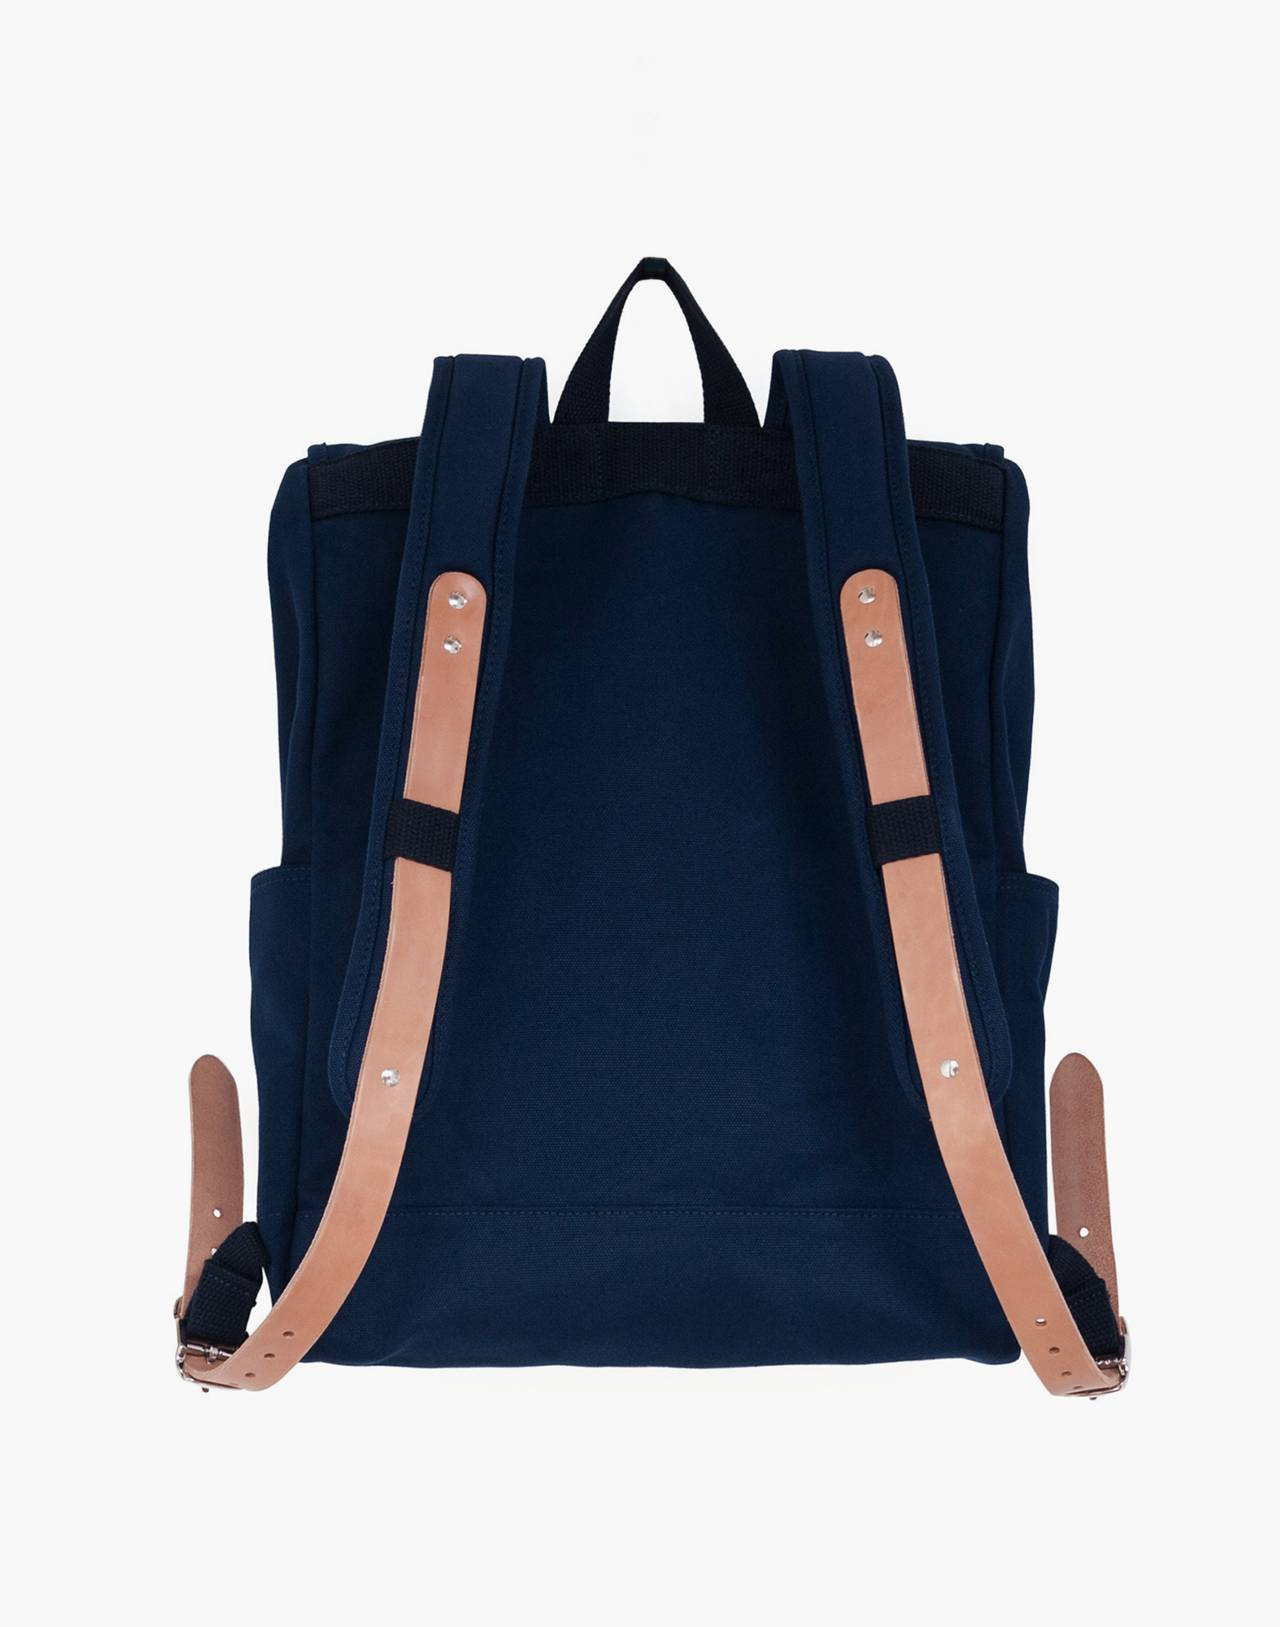 MAKR Canvas Farm Backpack in navy image 2